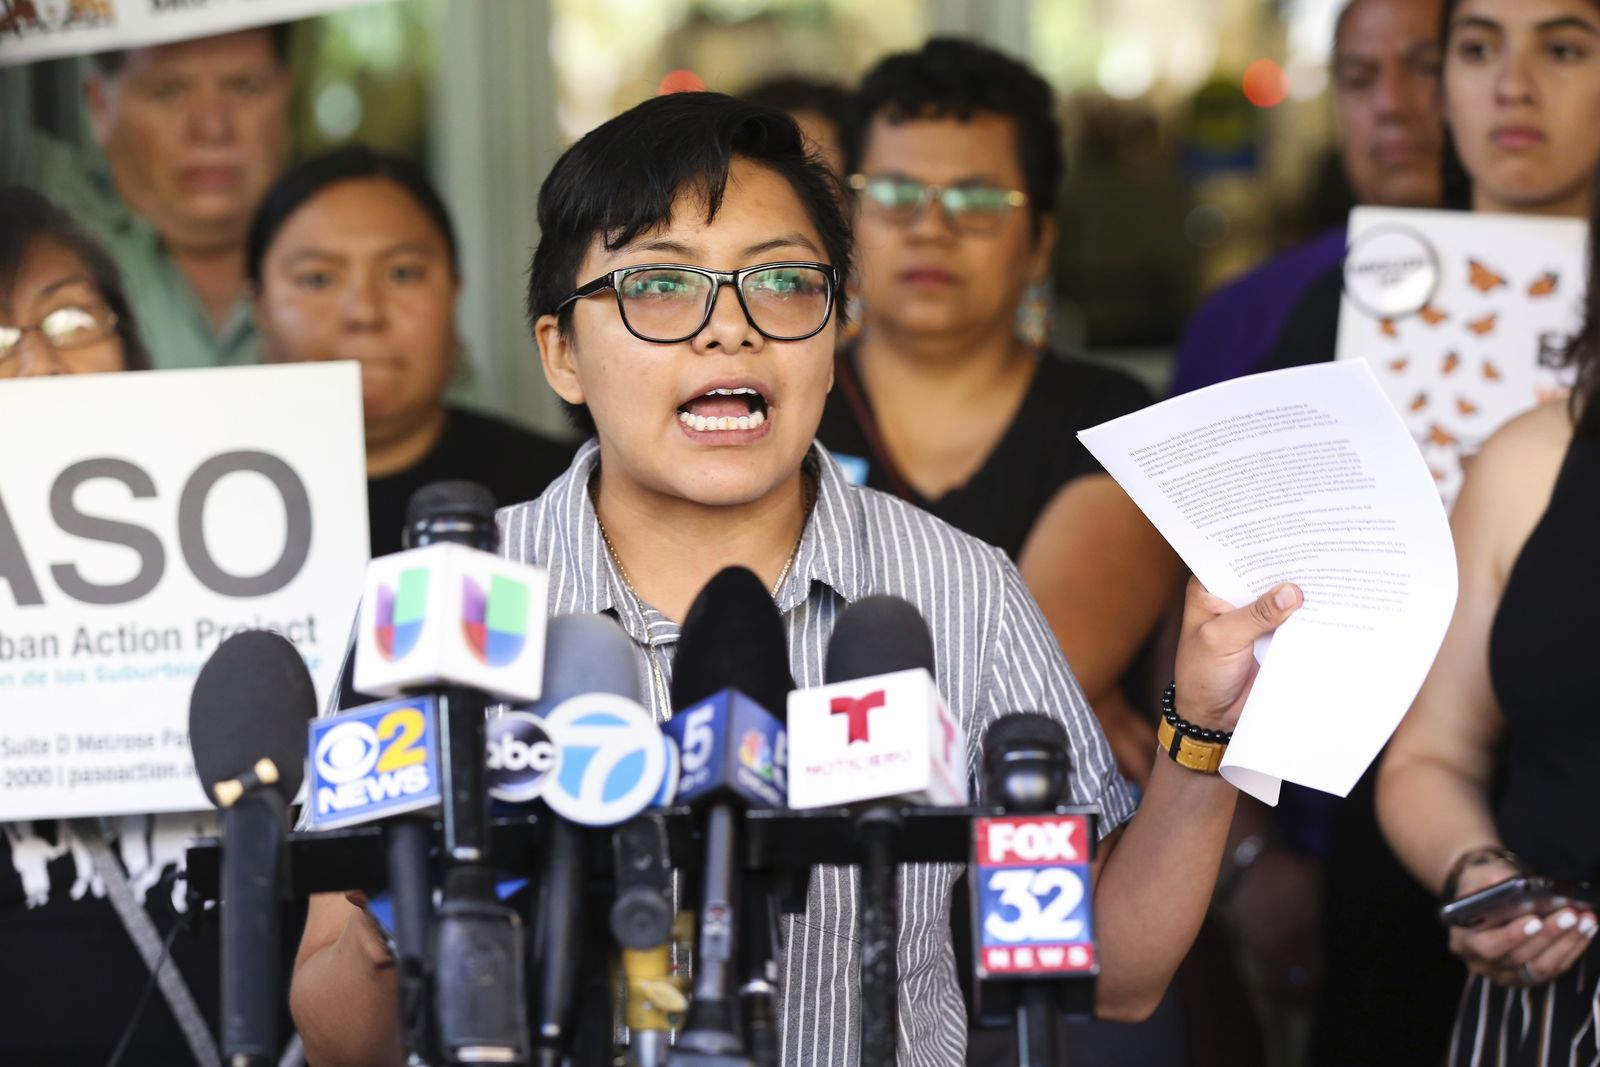 Rey Wences, an organizer at Organized Communities Against Deportations (OCAD), addresses reporters during a new conference outside U.S. Citizenship and Immigration Services offices in Chicago, Thursday, July 11, 2019.{ } (AP Photo/Amr Alfiky)